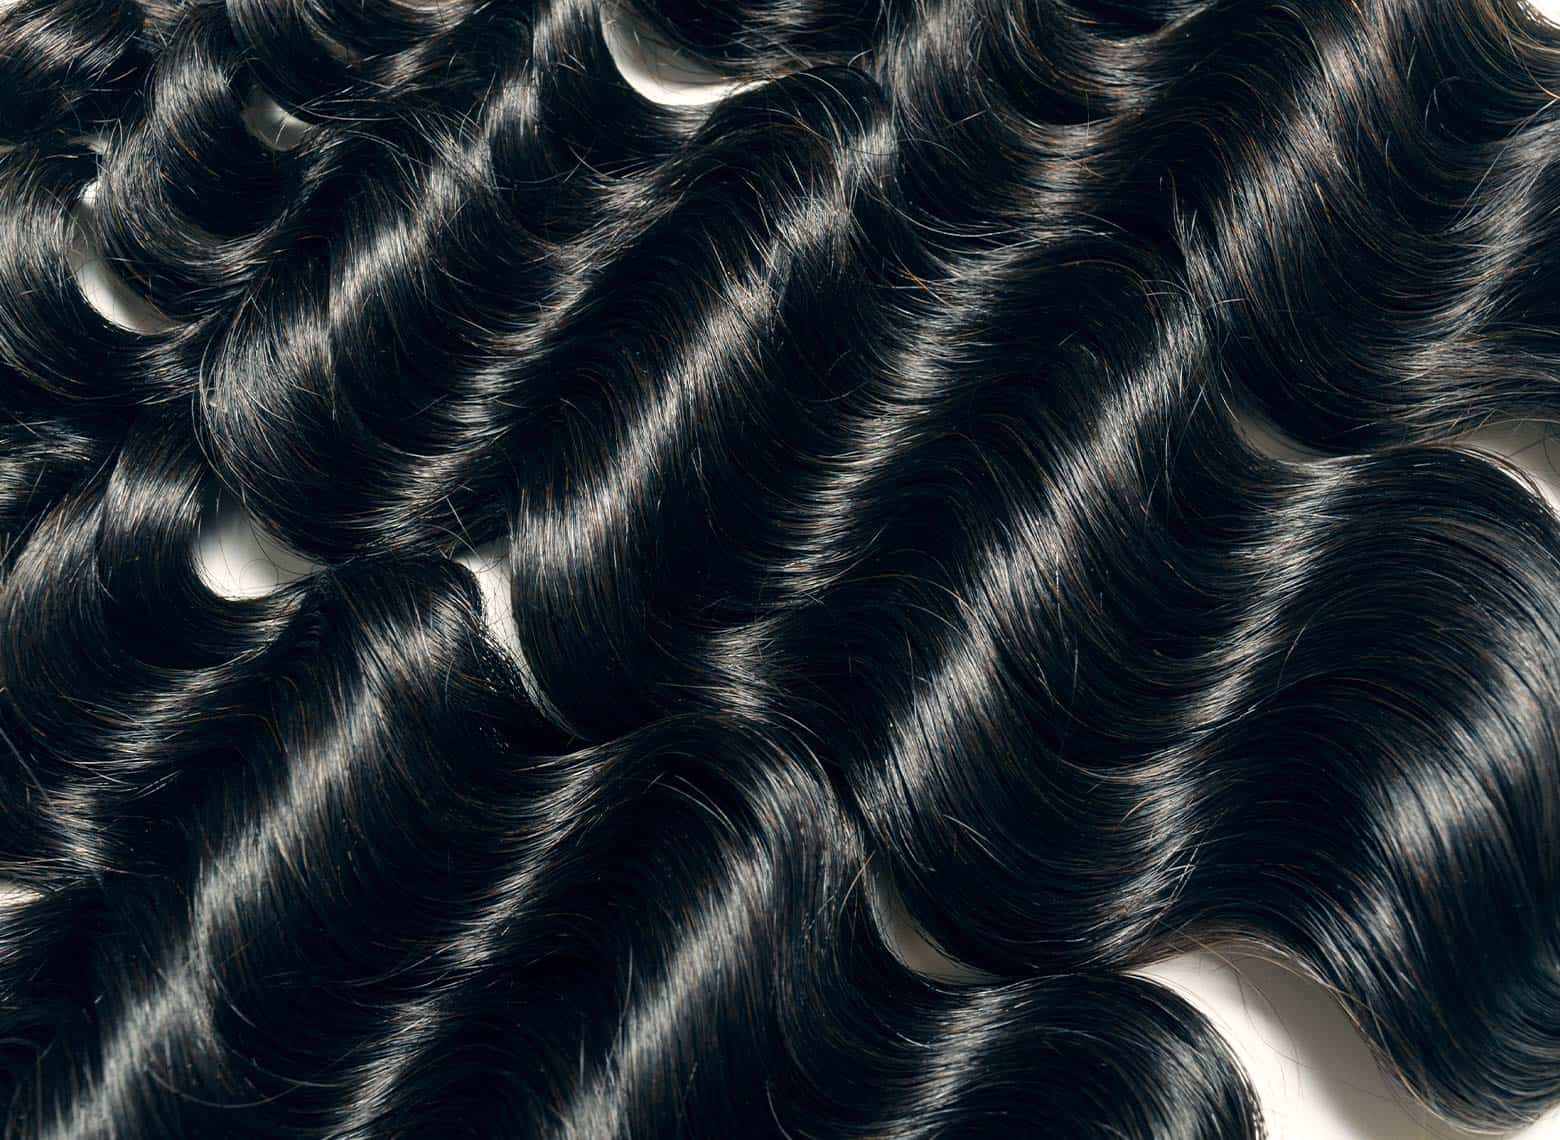 close up of weave hair laid out on table